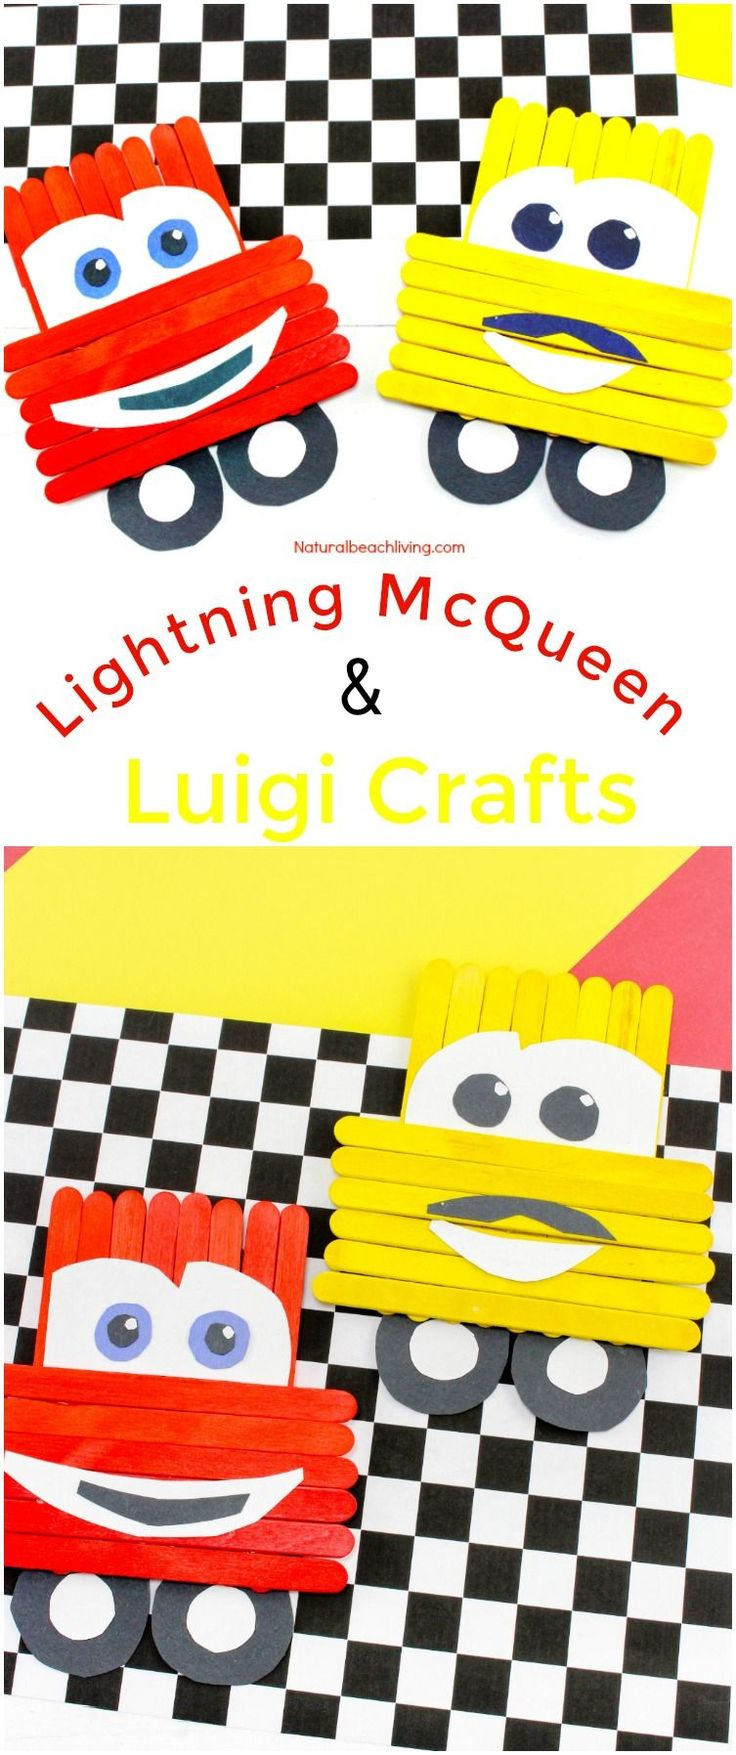 Disney Pixar Cars Popsicle Stick Crafts for kids, Great Craft idea for kids, Lightning McQueen Crafts, Luigi, Cars Party Idea, A Perfect Disney Fan Activity